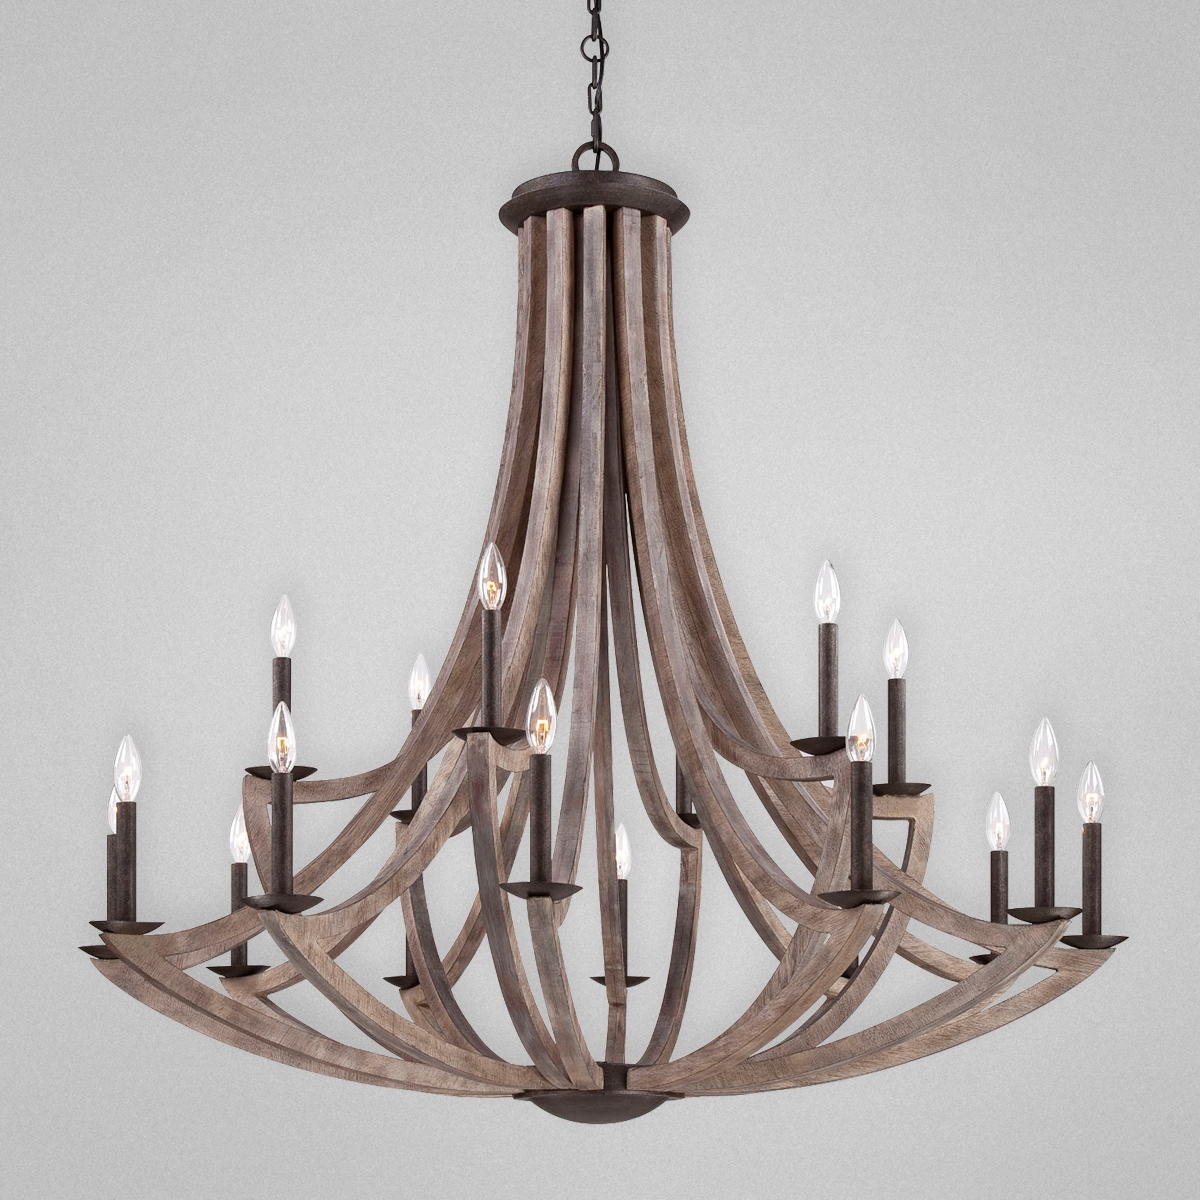 Aden Star Ltd Llc Dba 1020 Decor Arcata Bronze Iron And Wood 18 In Large Iron Chandeliers (Image 1 of 15)